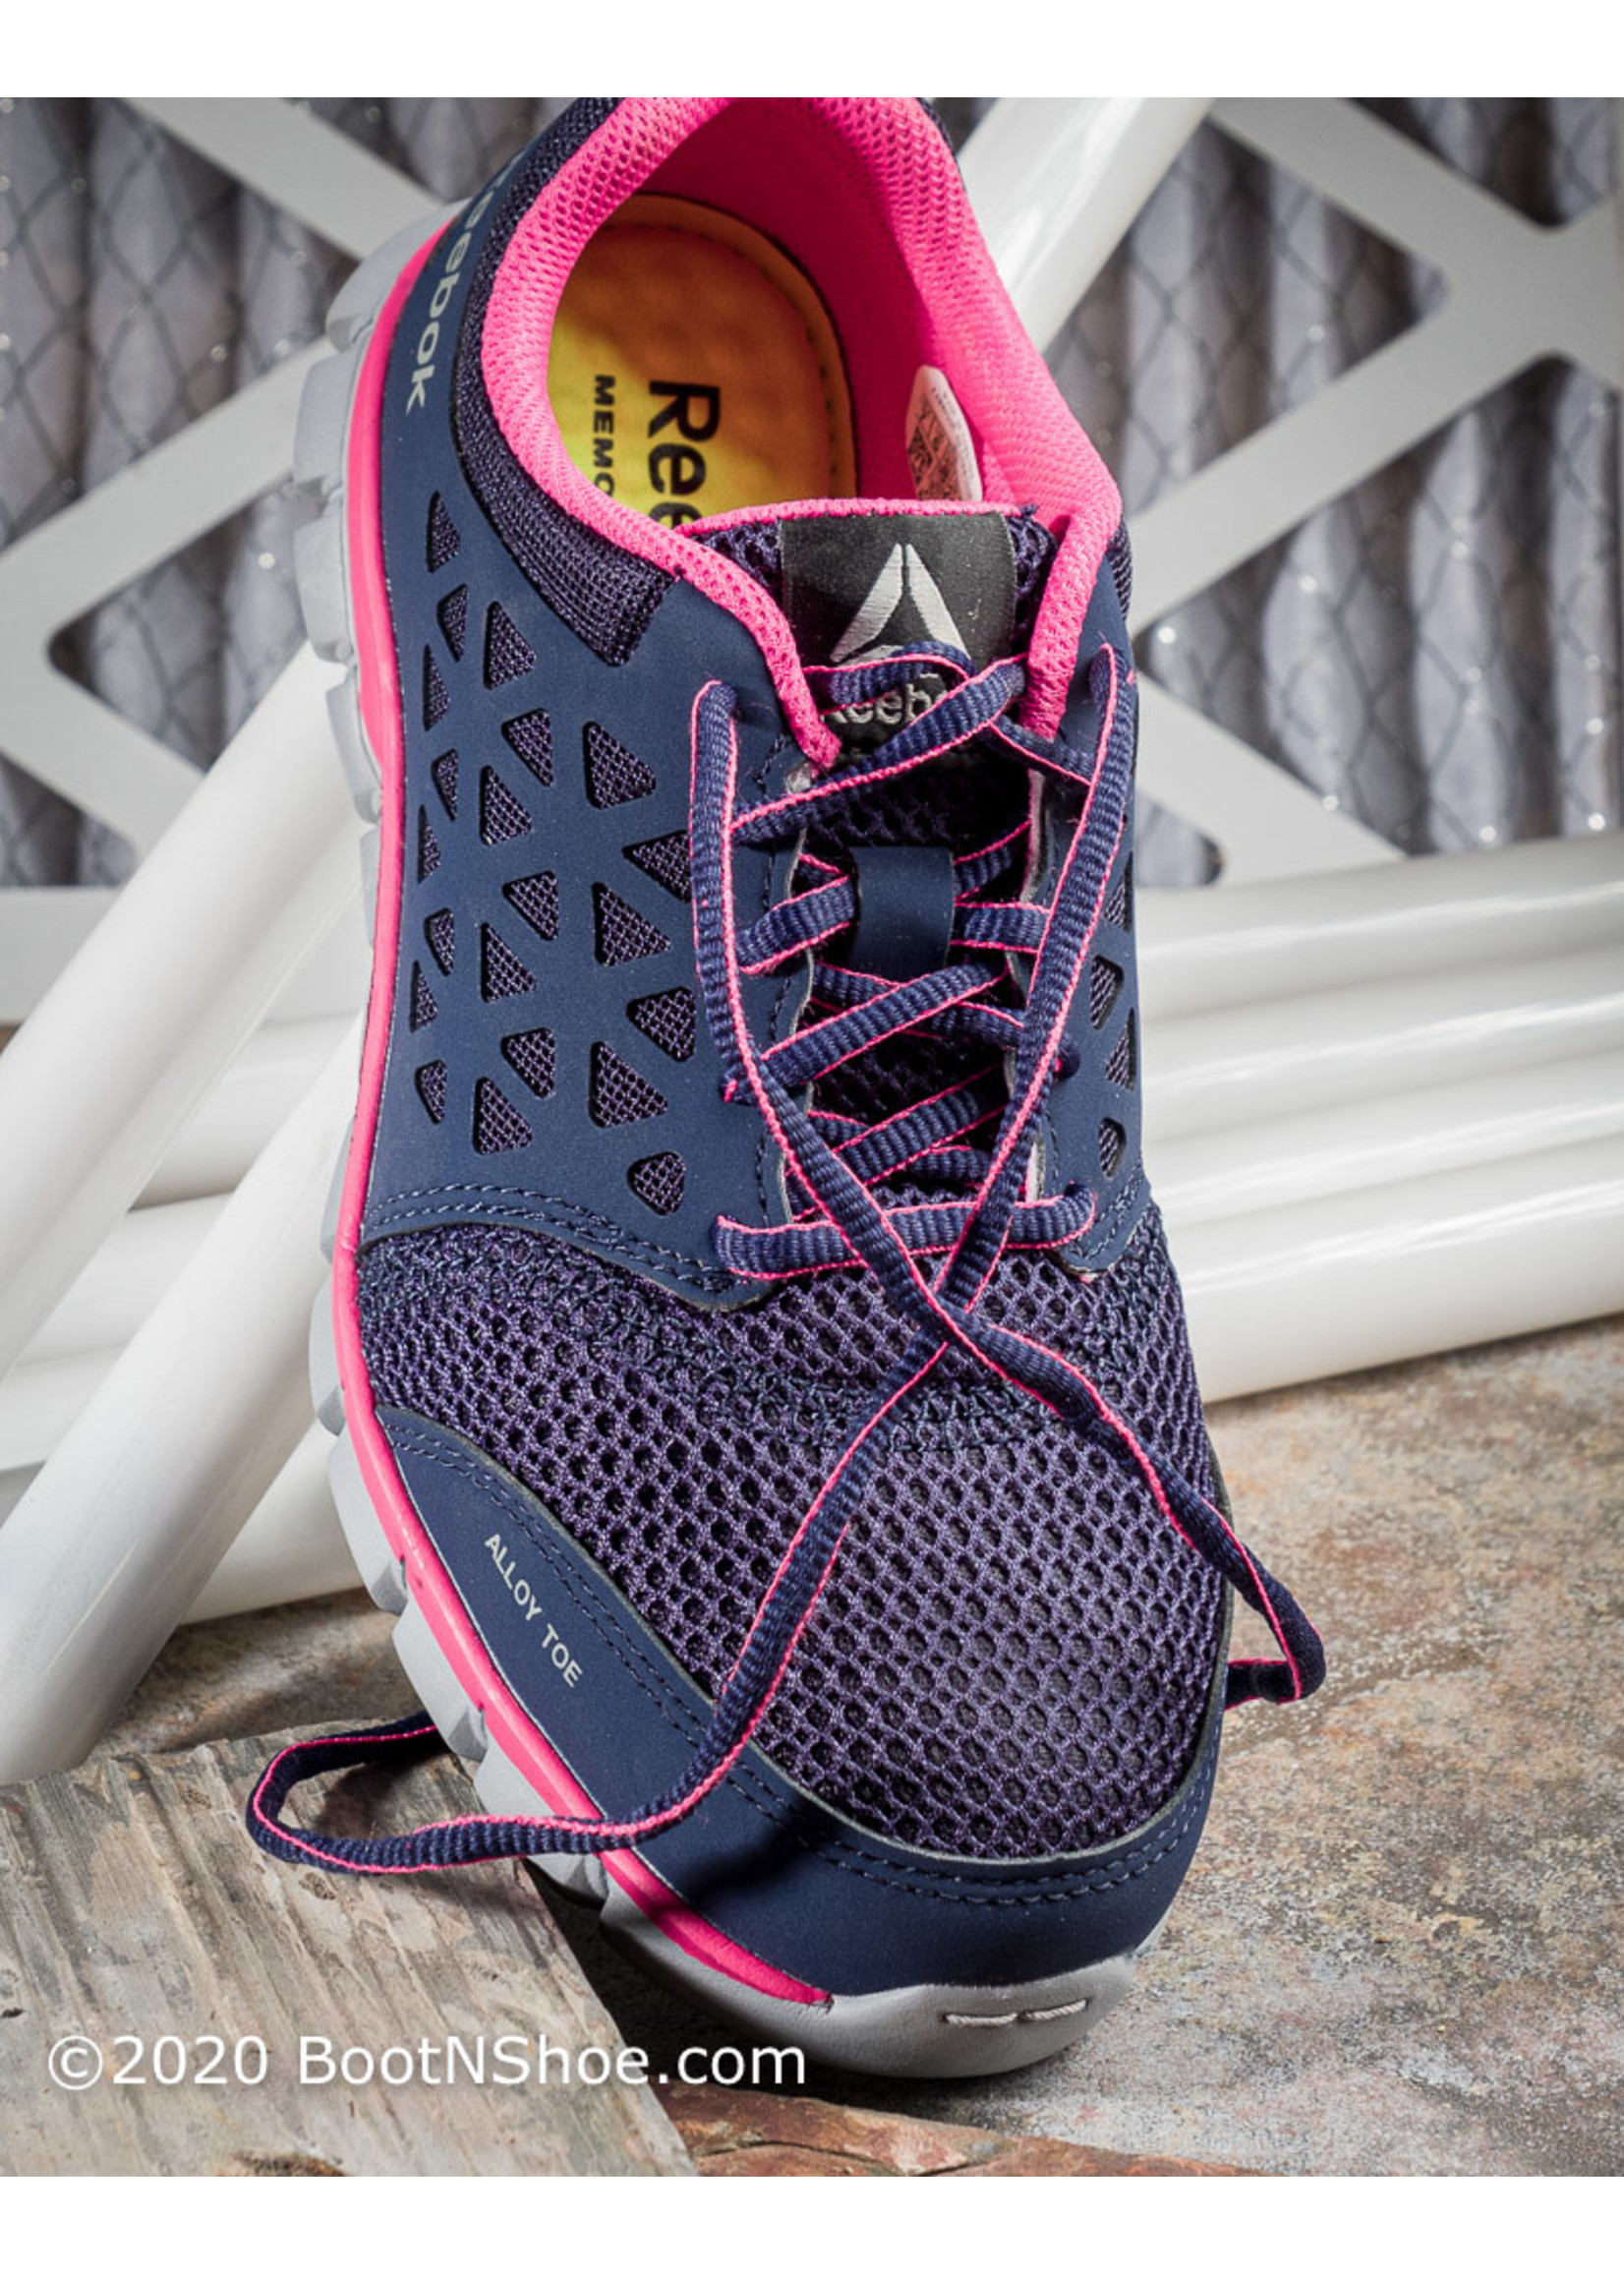 Reebok Women's Sublite Cushion Athletic Alloy Work Shoes RB046